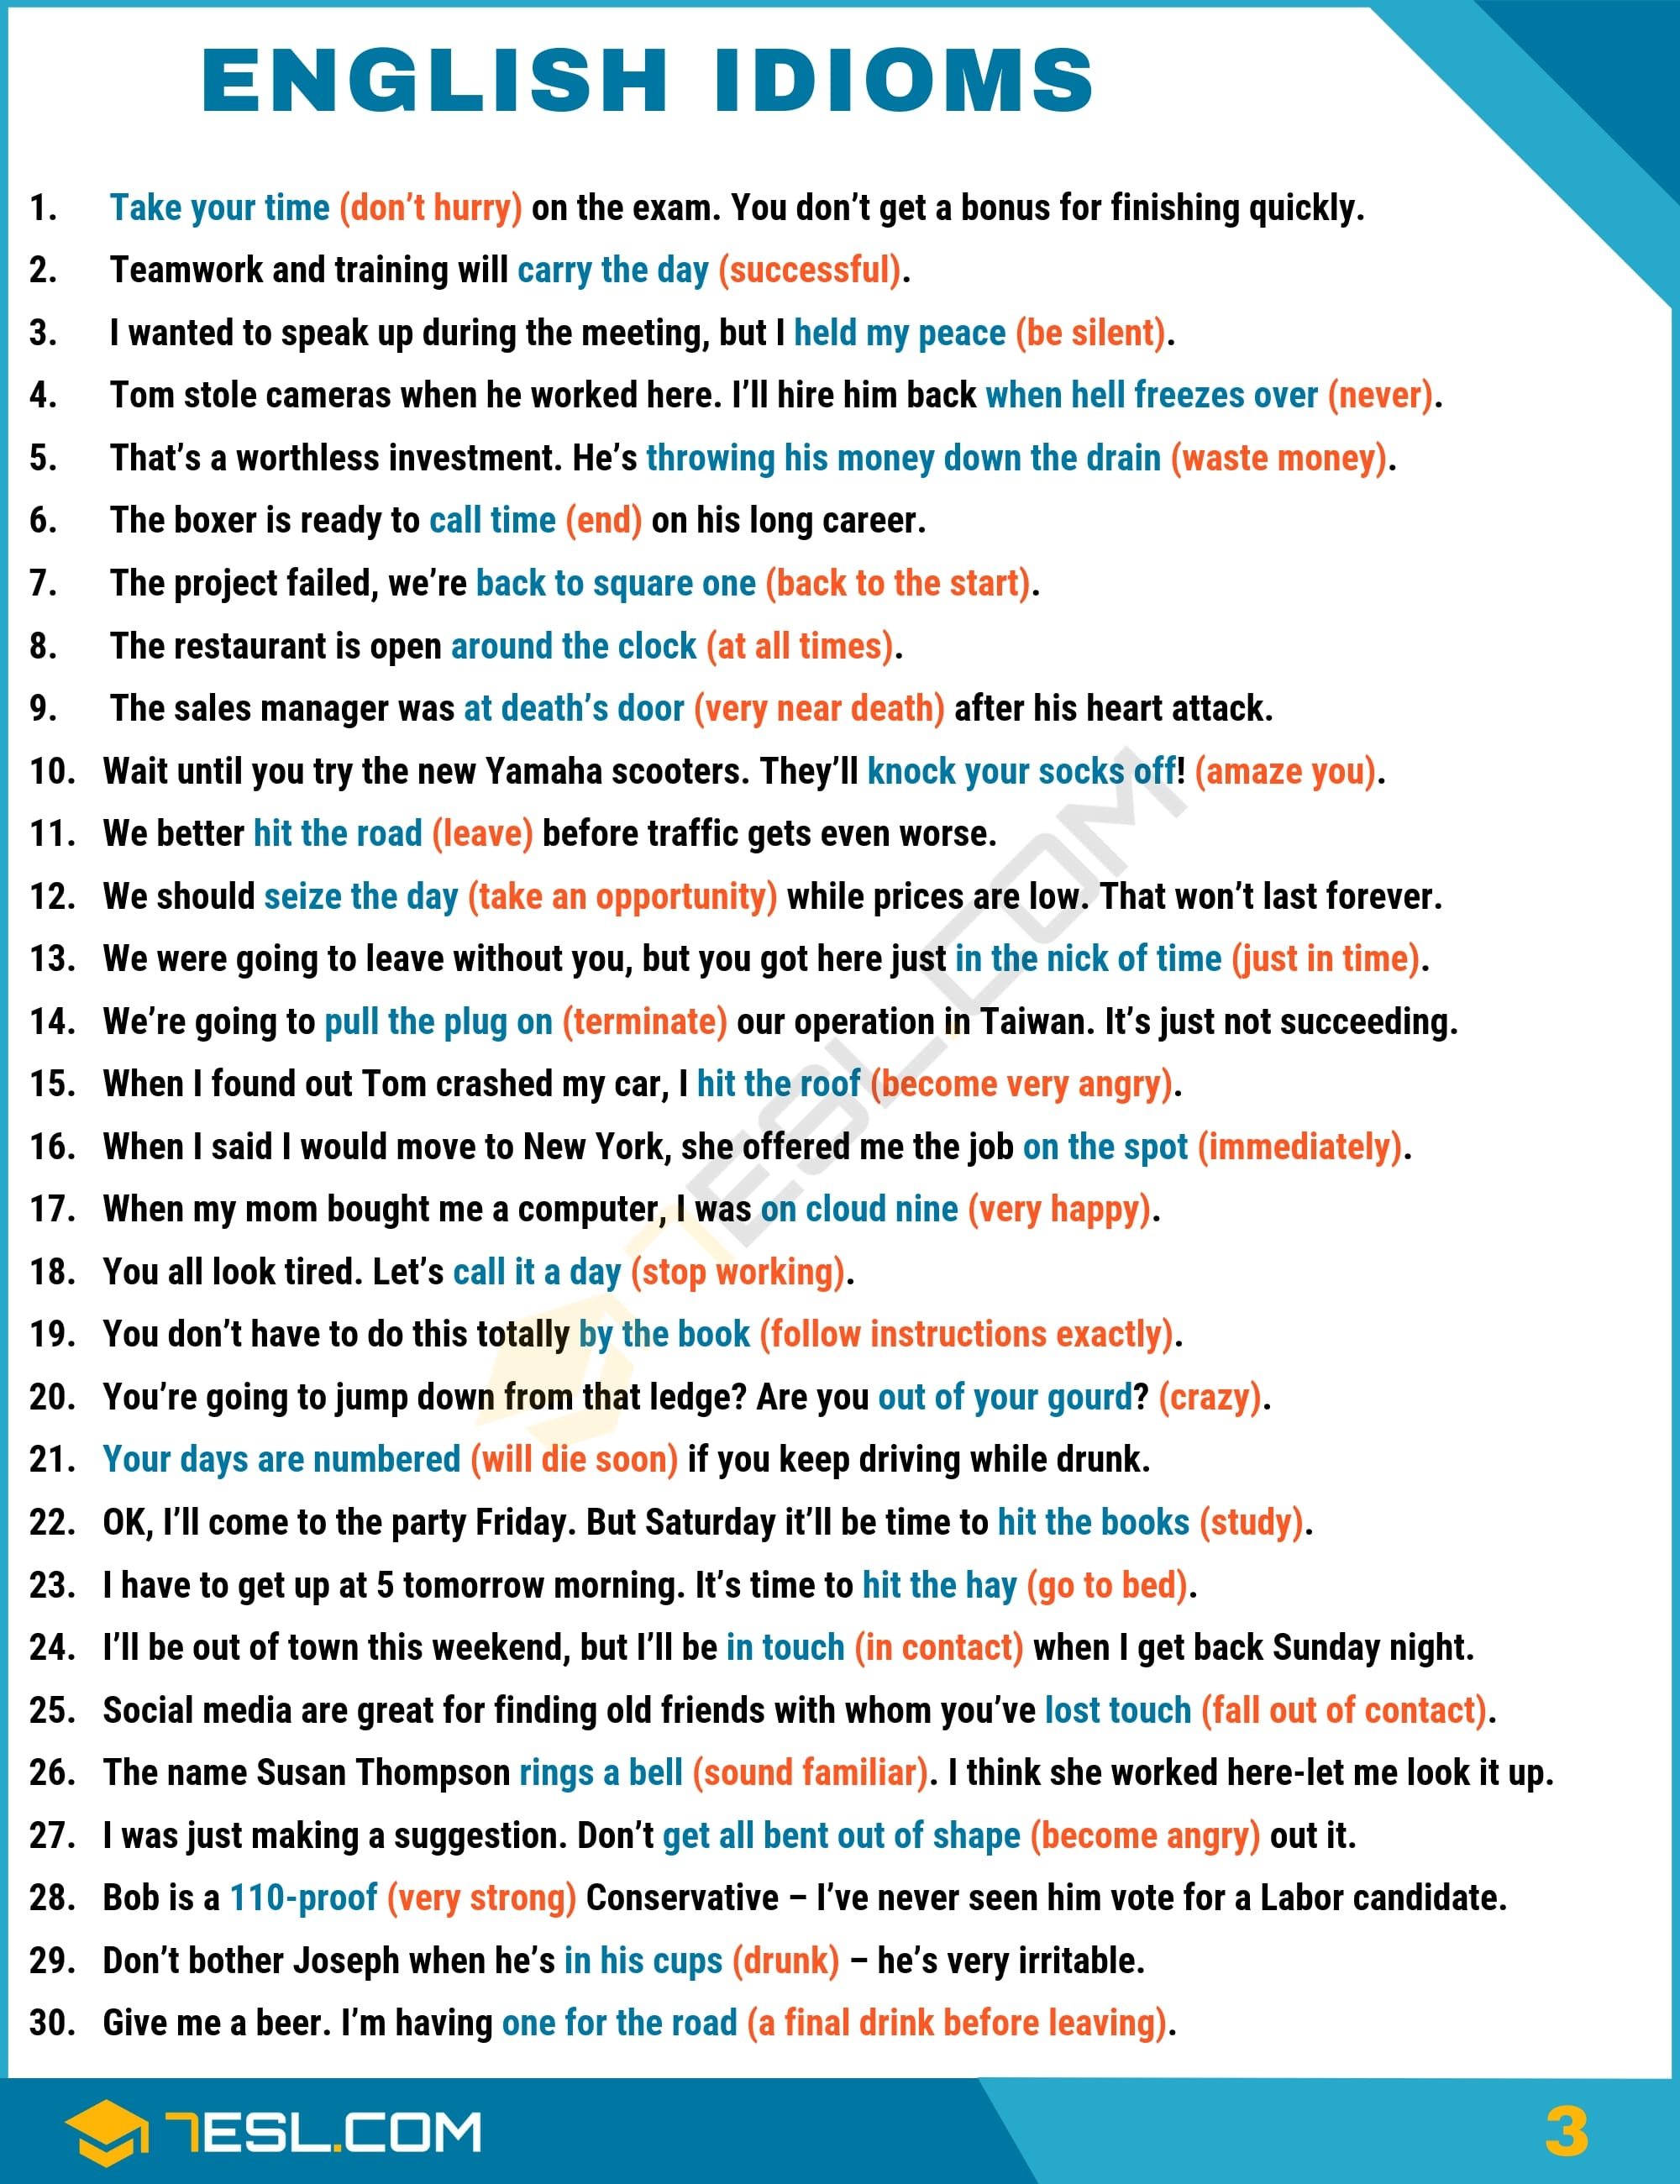 English Idioms Examples with Idiom Meaning | Image 3